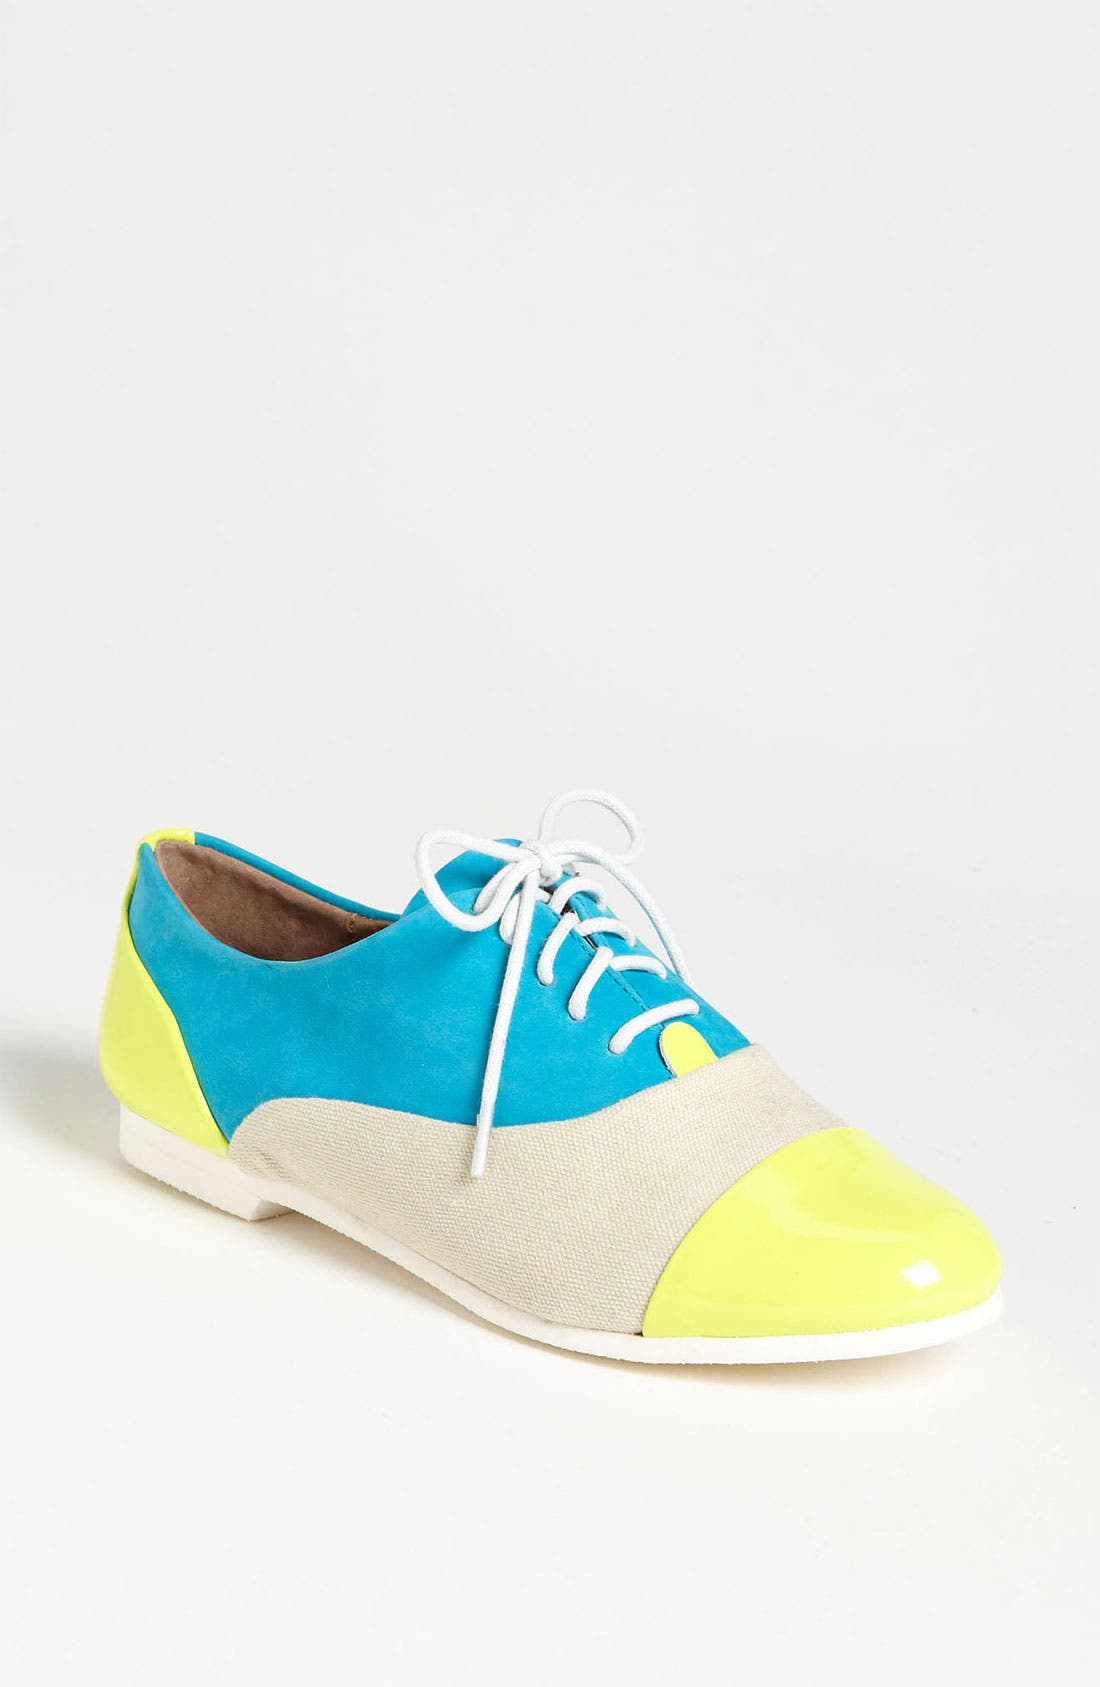 Alternate Image 1 Selected - Steve Madden 'Taxxi' Oxford Flat